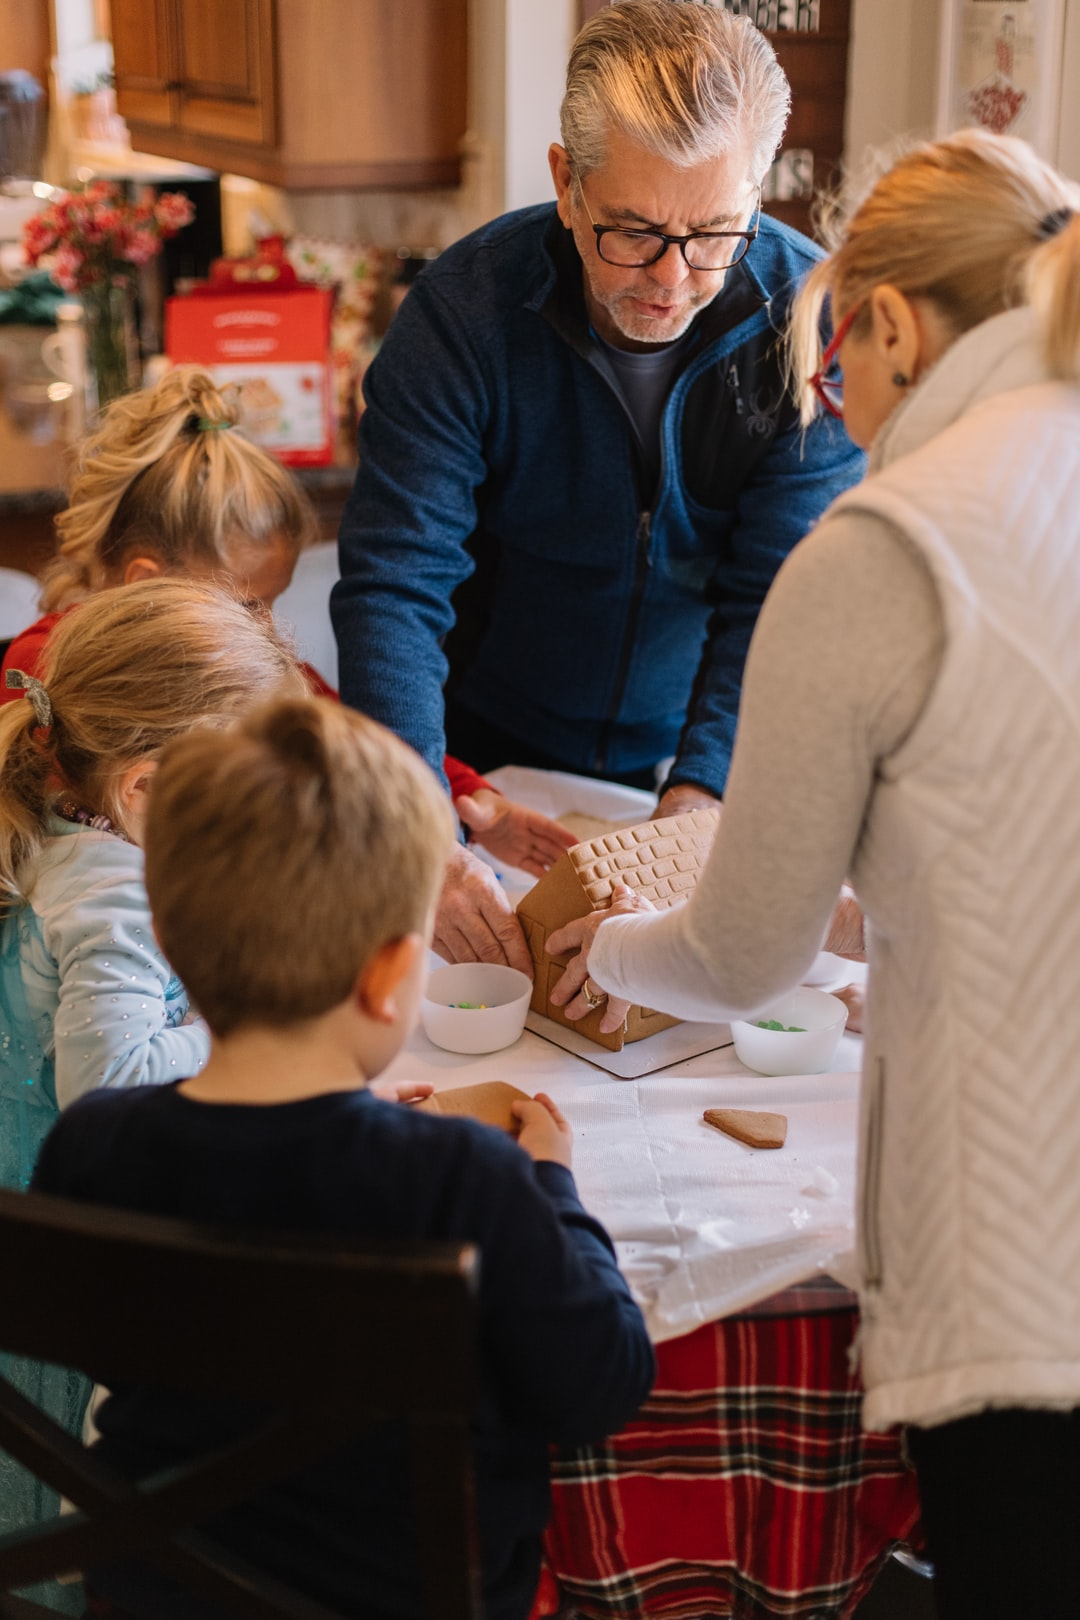 kids with grandparents making a gingerbread house